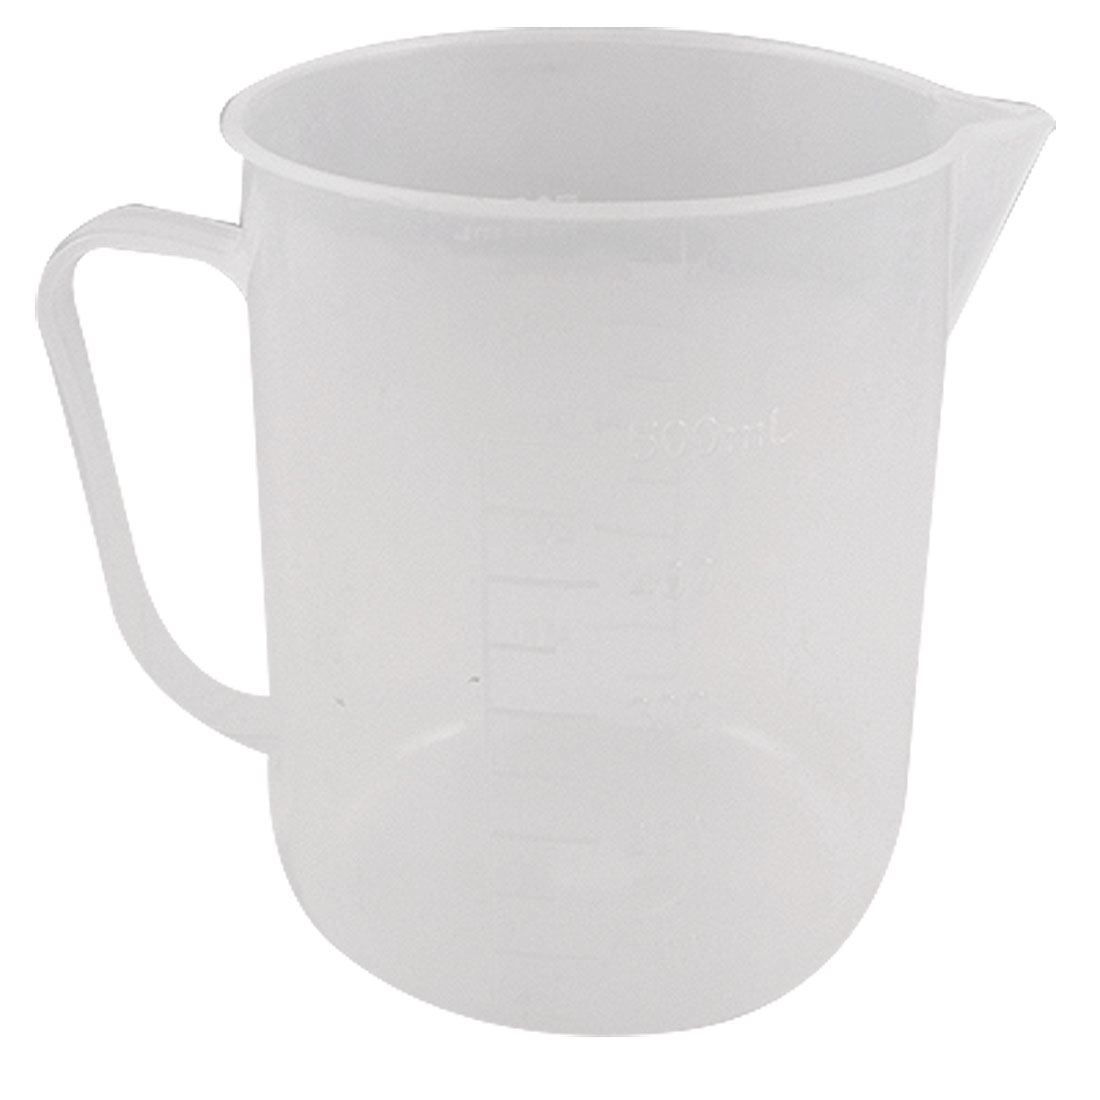 500ml Capacity Handle Design Transparent Plastic Lab Measuring Cup Beaker